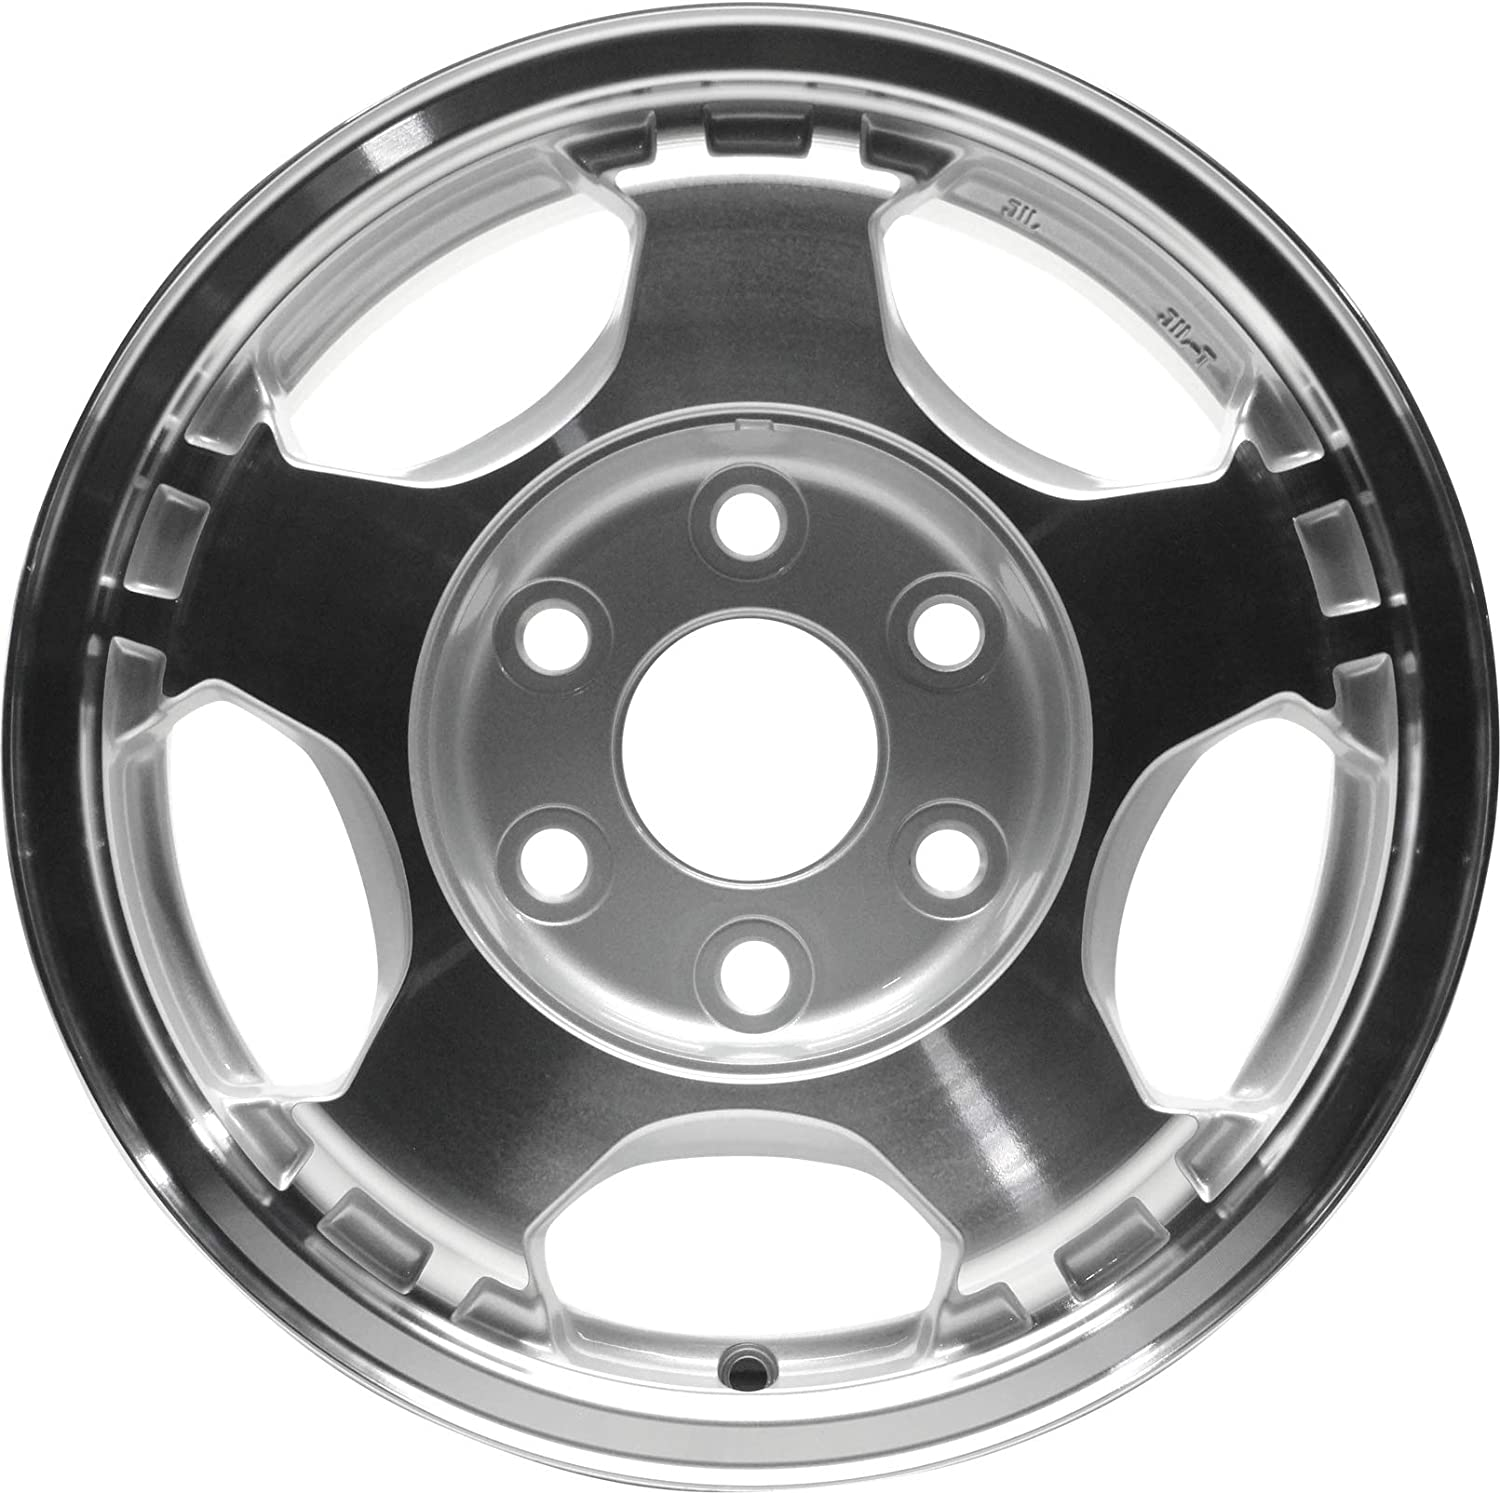 Partsynergy Replacement For New Aluminum Alloy Wheel Rim 16 Inch Fits 2003-2005 Chevrolet Astro 6-139.7mm 5 Spokes